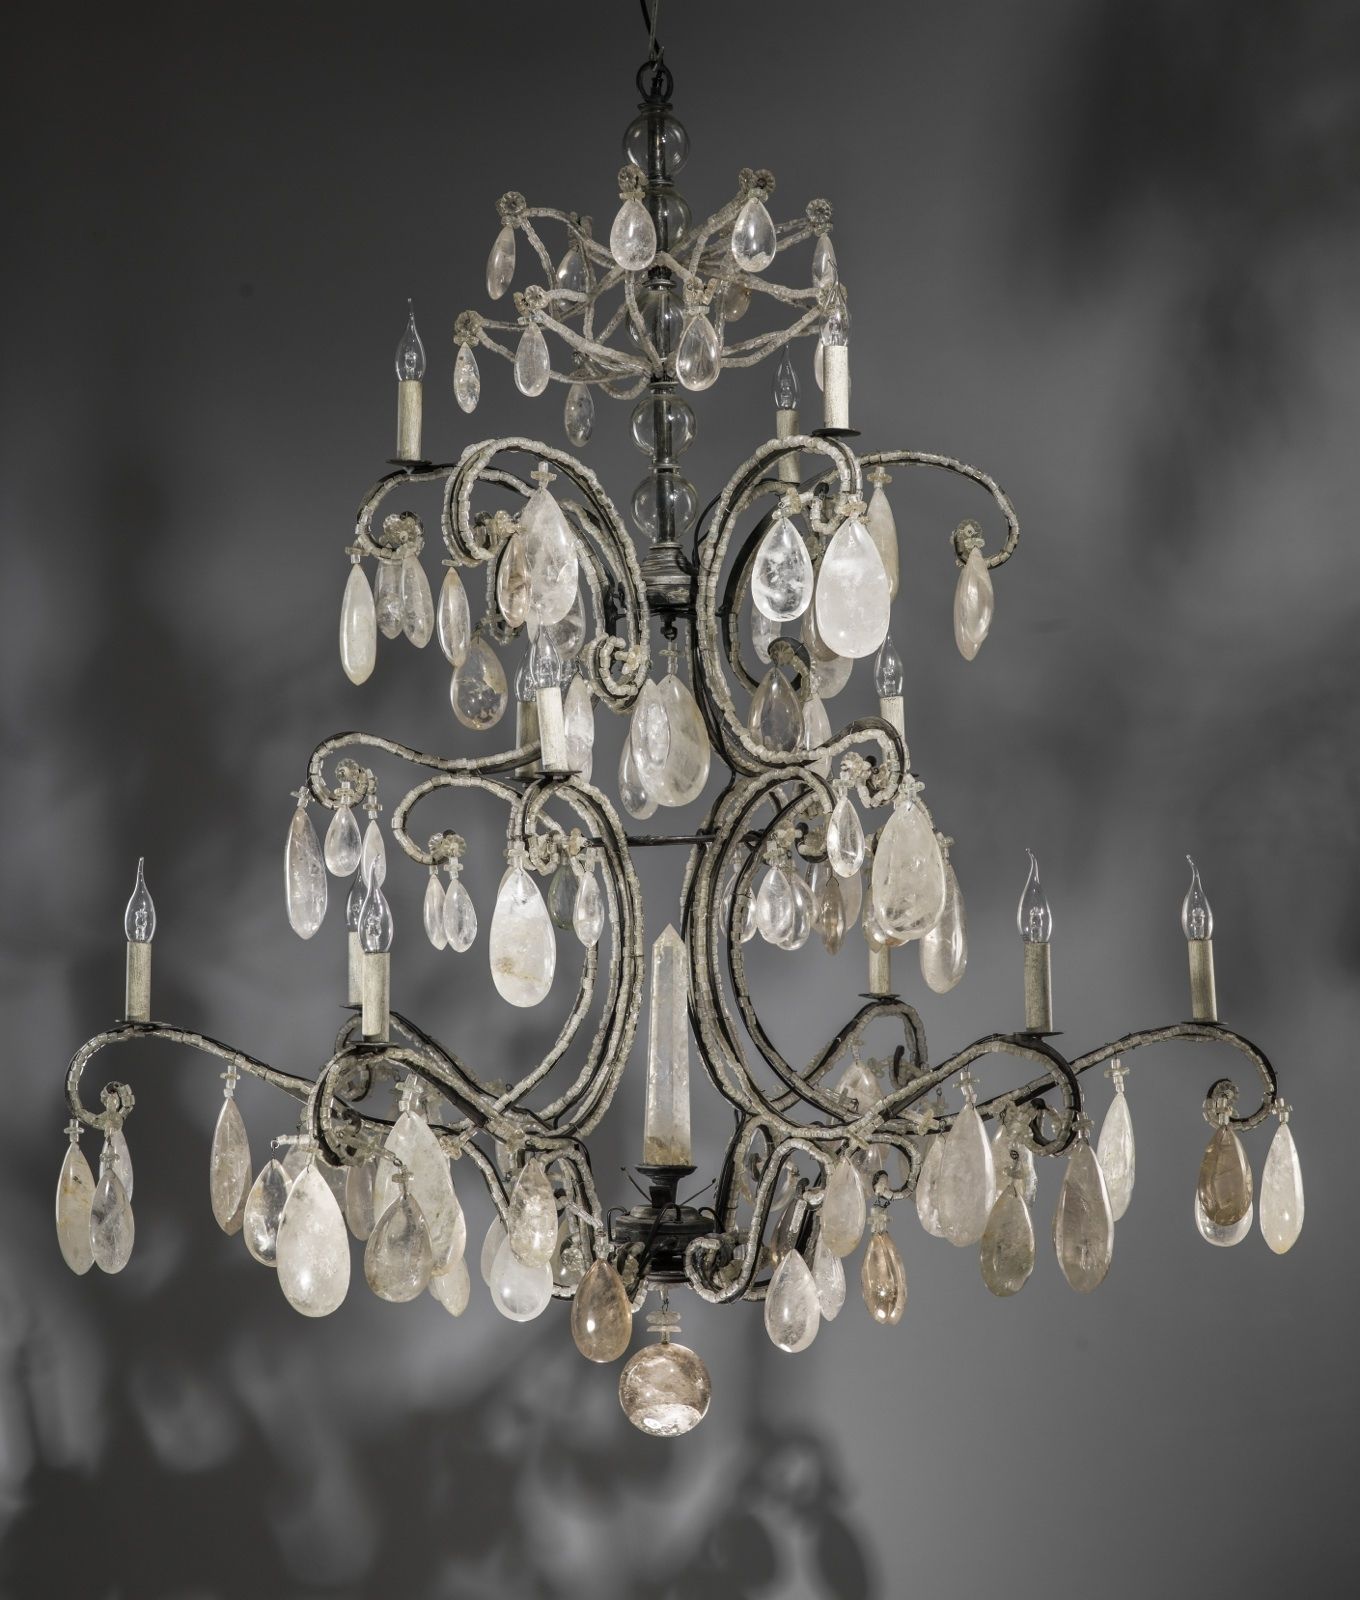 Massive Wrought Iron Rock Crystal Chandelier With 12 Lights (T3435 For Newest Massive Chandelier (View 10 of 15)